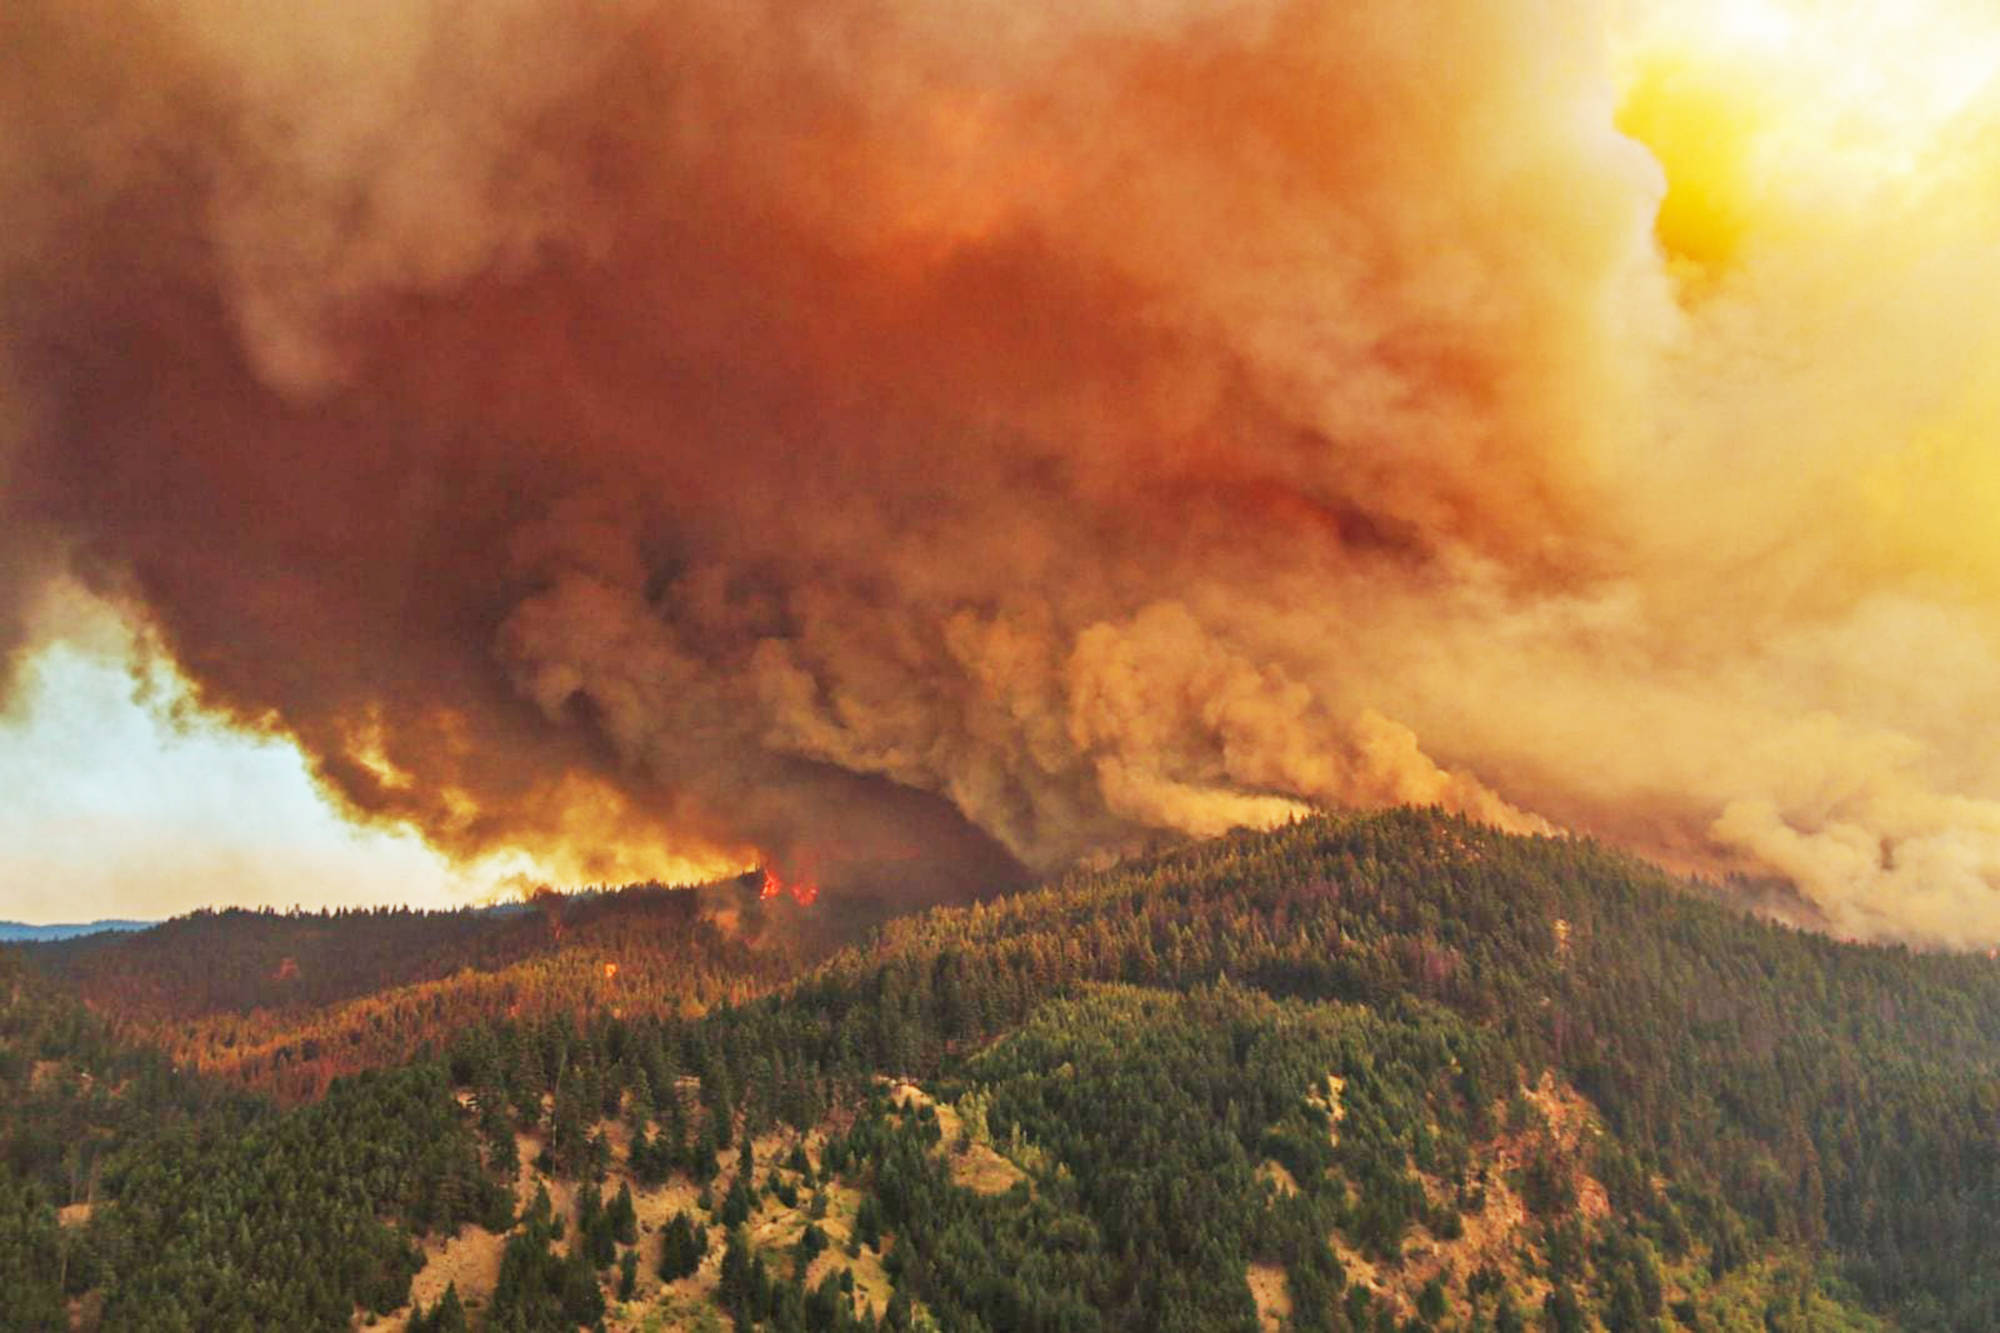 As of Thursday, Aug. 5, the White Rock Lake wildfire was estimated to be 32,500 hectares in size. On Aug. 4, in response to the fire, an evacuation order was issued for Falkland in Electoral Area D of the Columbia Shuswap Regional District. (BC Wildfire Service photo)